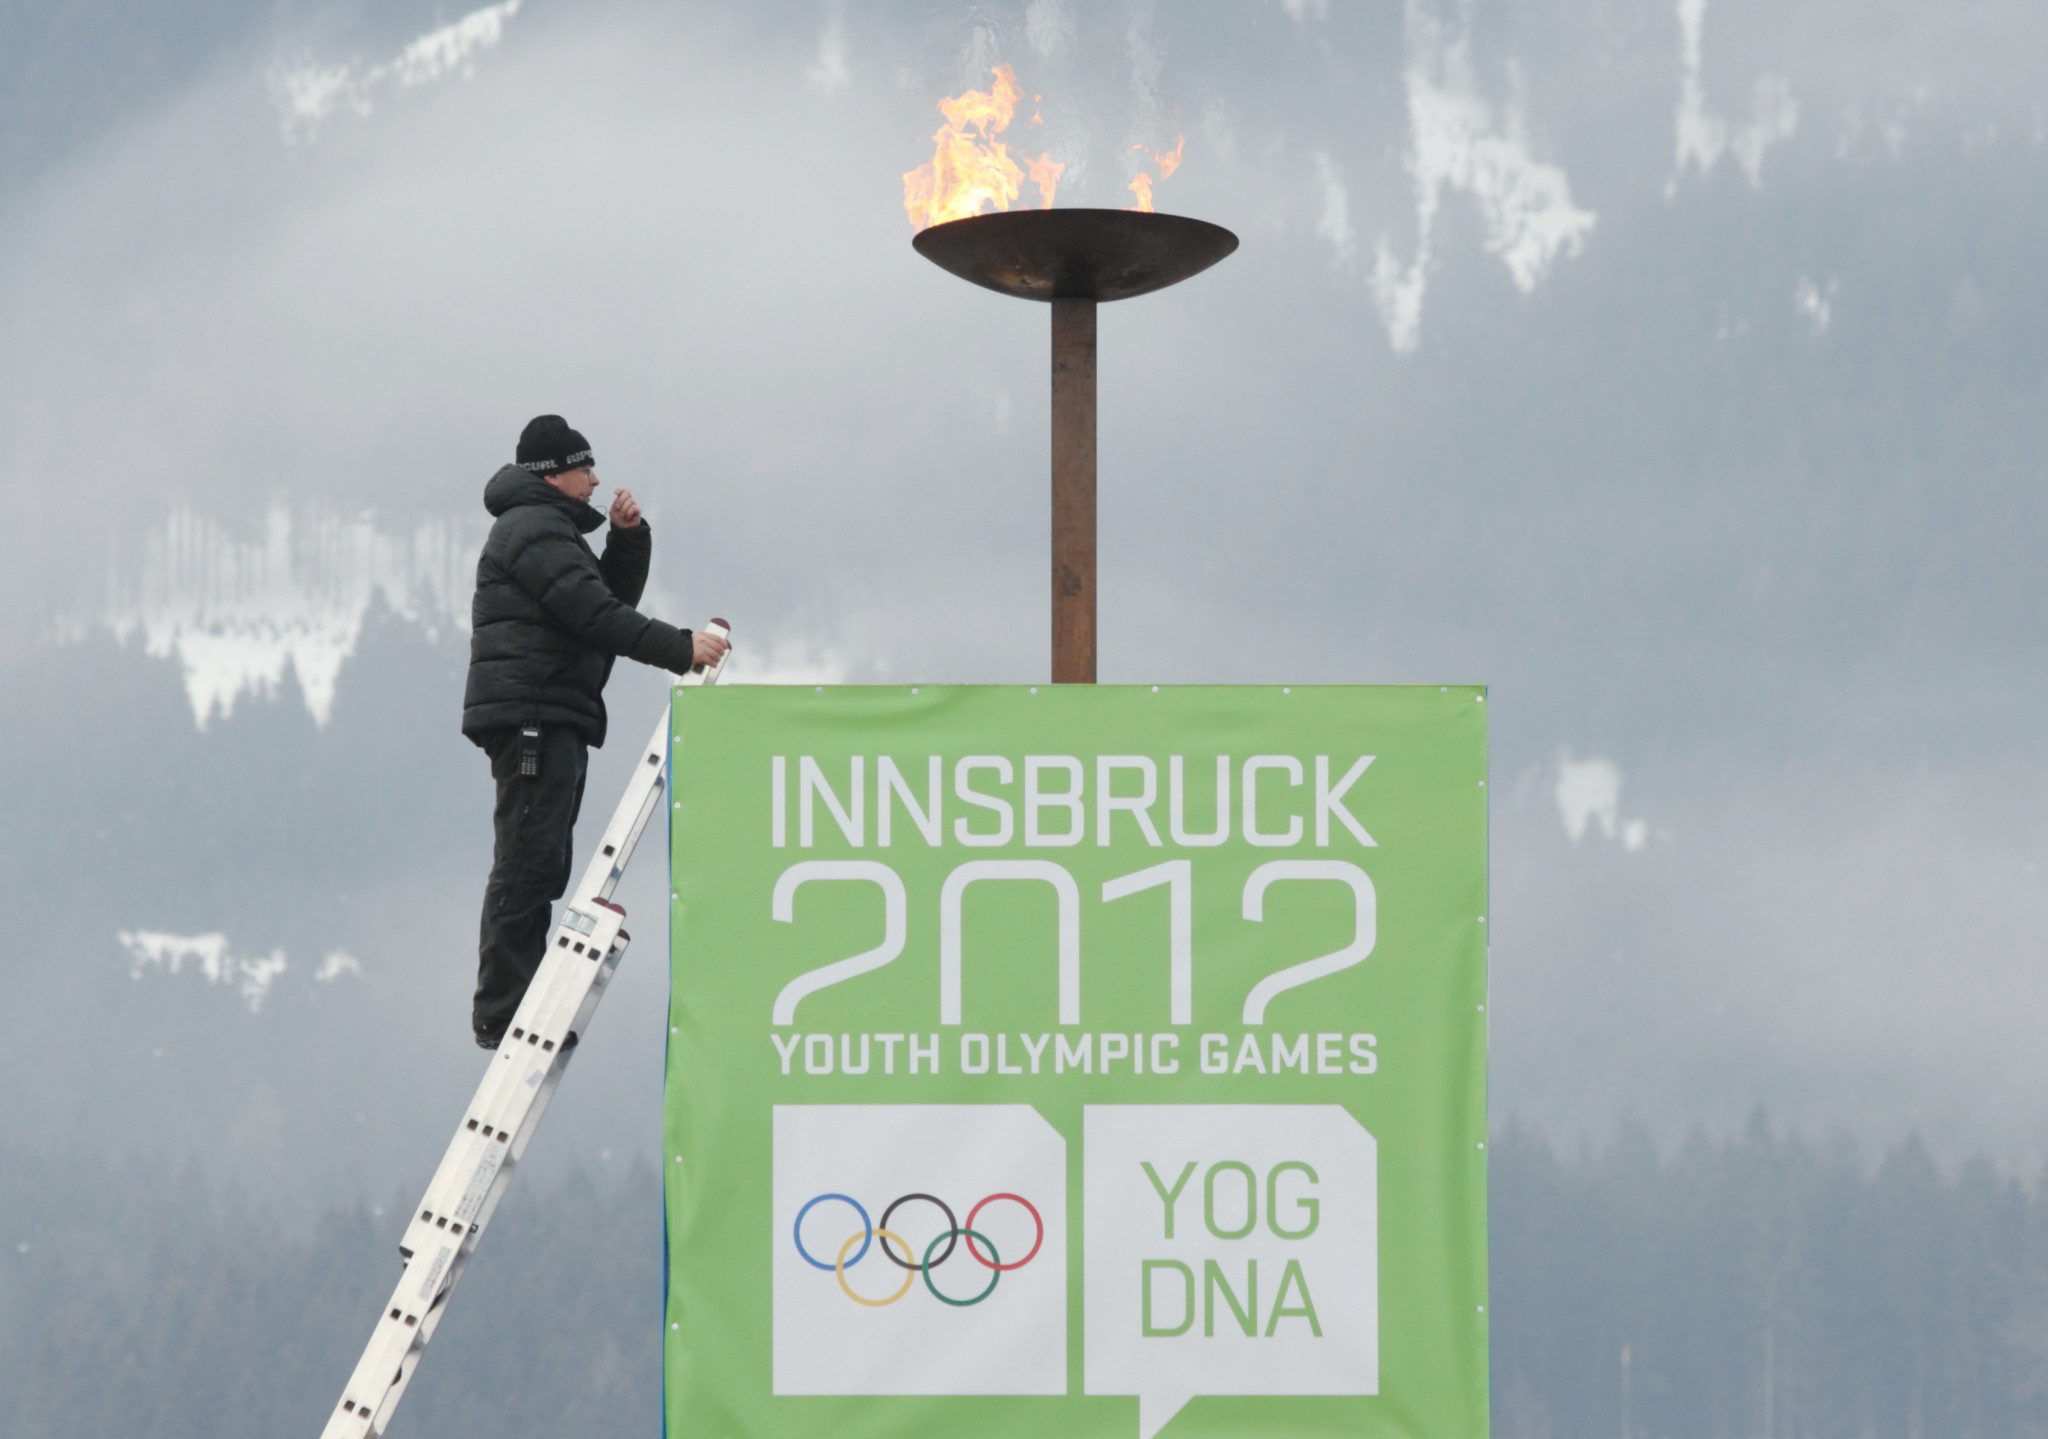 The flame burns at the first Winter Youth Olympic Games in Innsbruck ©Getty Images